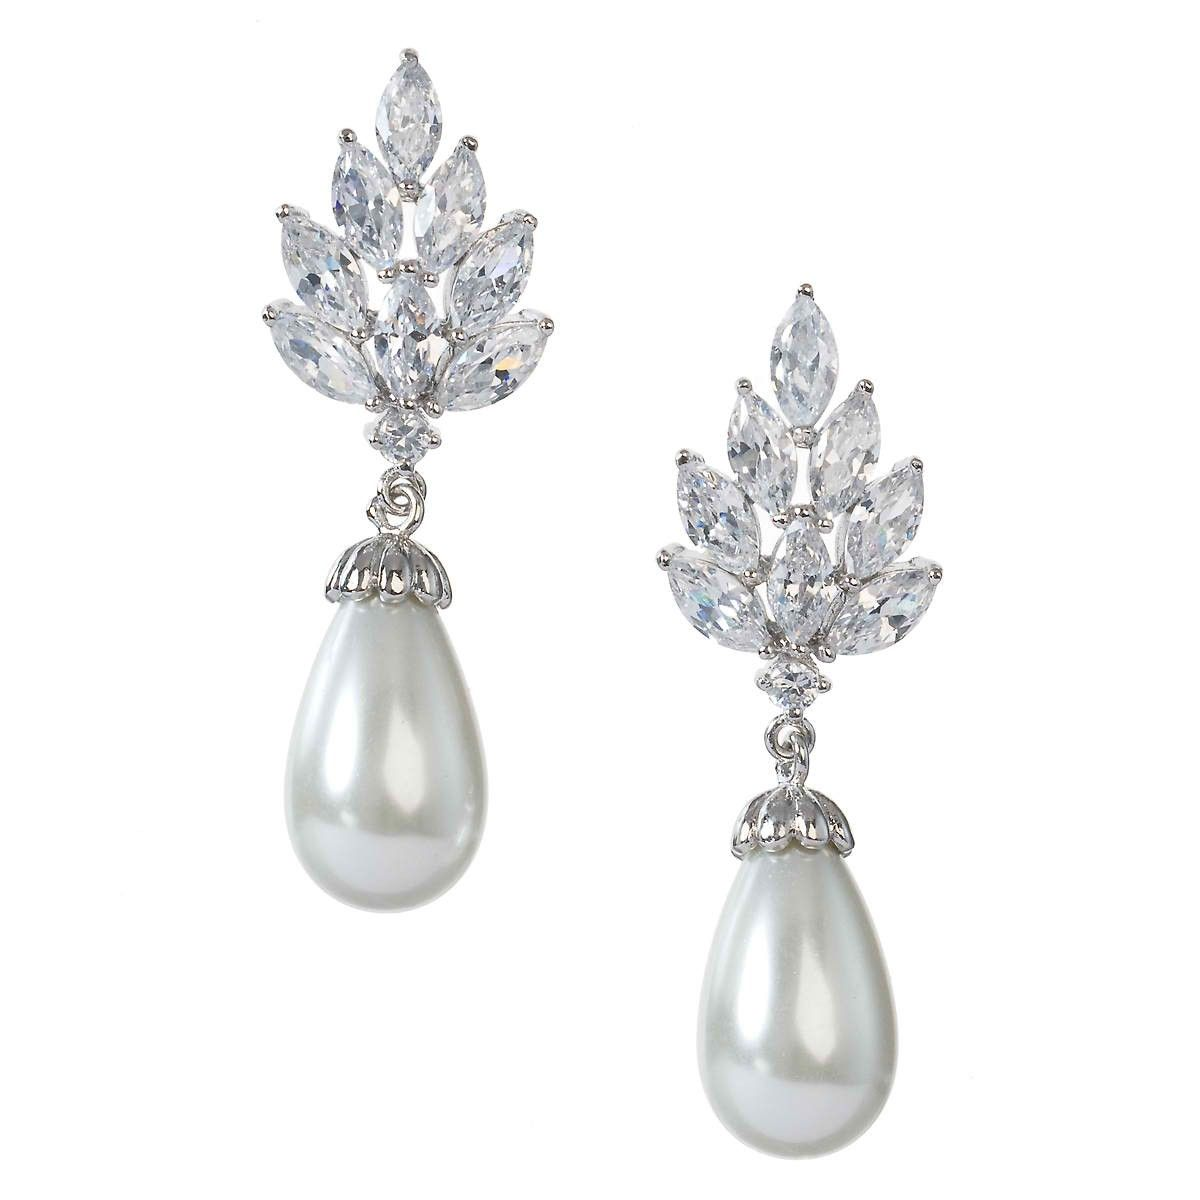 """Anna Bellagio - Margaret Modern Vintage Pearl and Cubic Zirconia Bridal Earring - Length 1.5"""", Width 0.5"""", $78.00"""